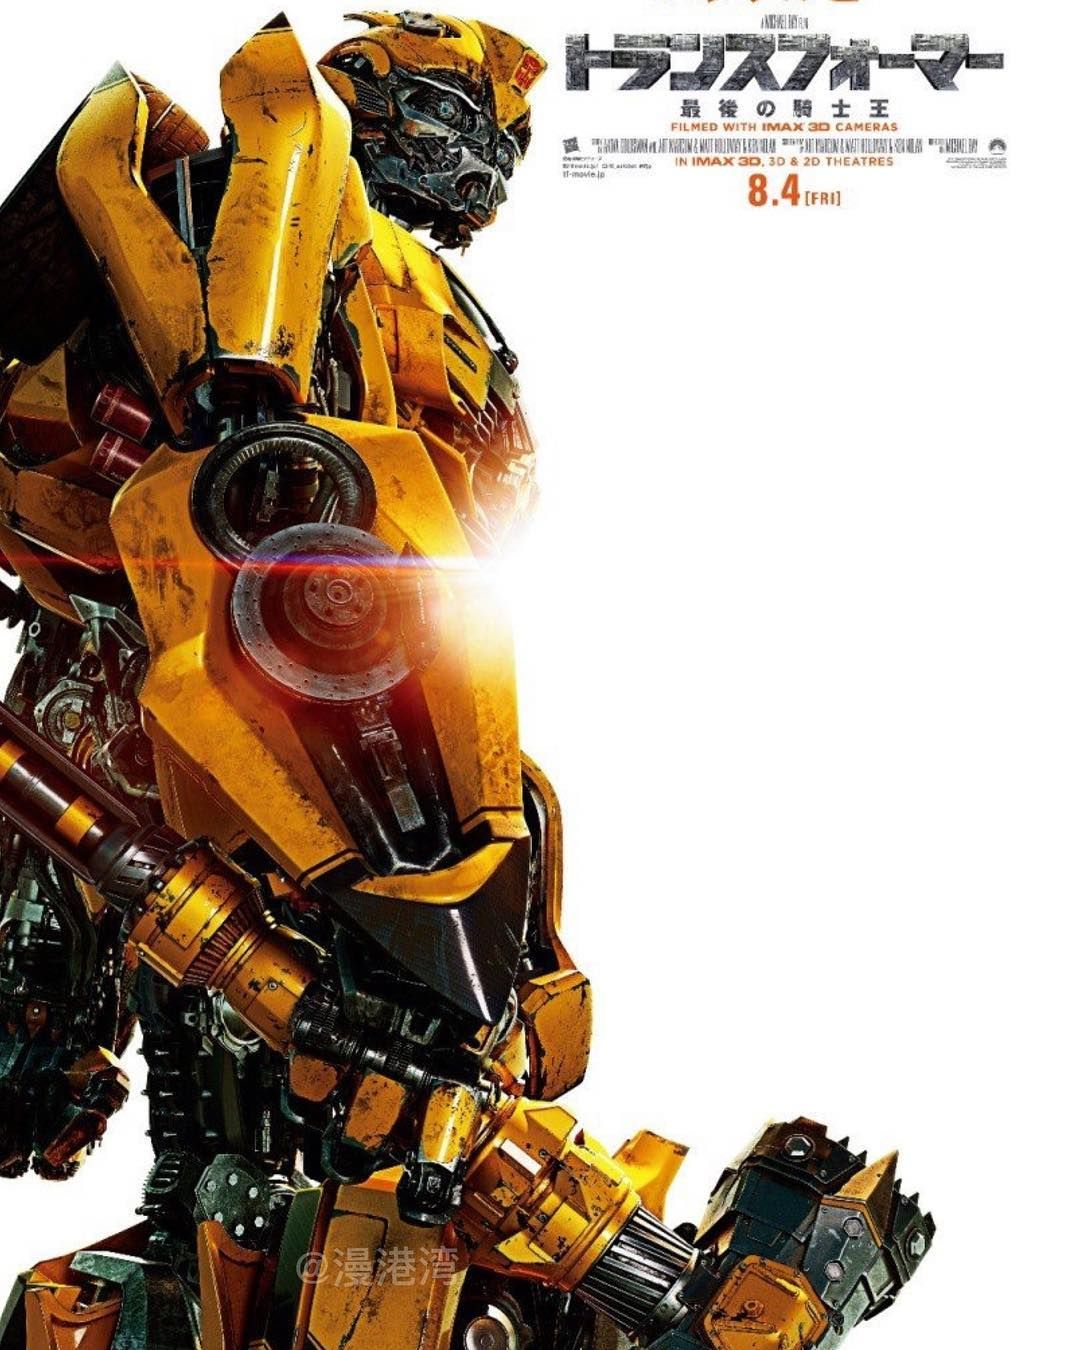 transformers5 character poster in color bumblebee tf5 transformers ian pinterest anime. Black Bedroom Furniture Sets. Home Design Ideas